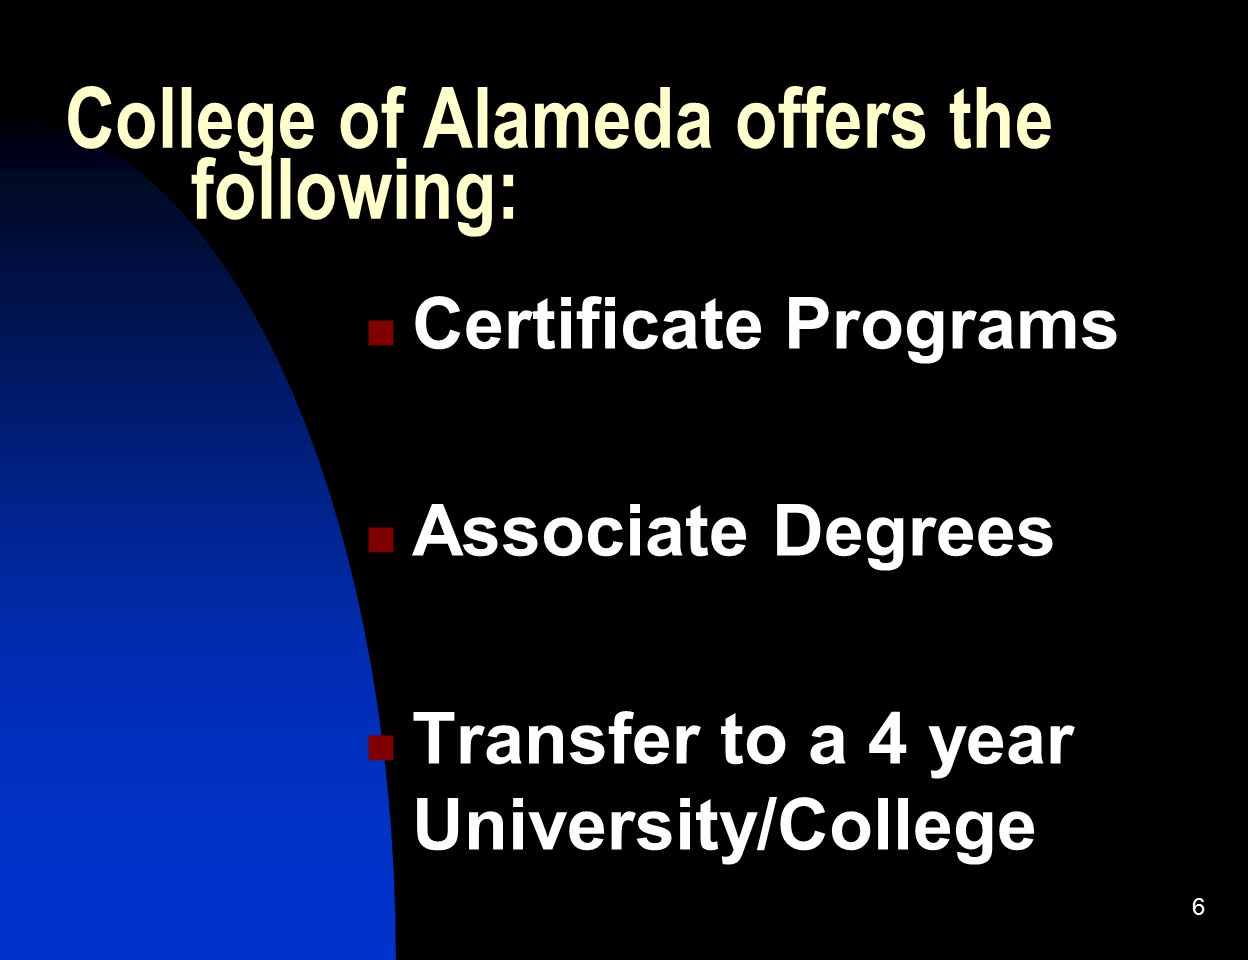 College of Alameda offers the following: